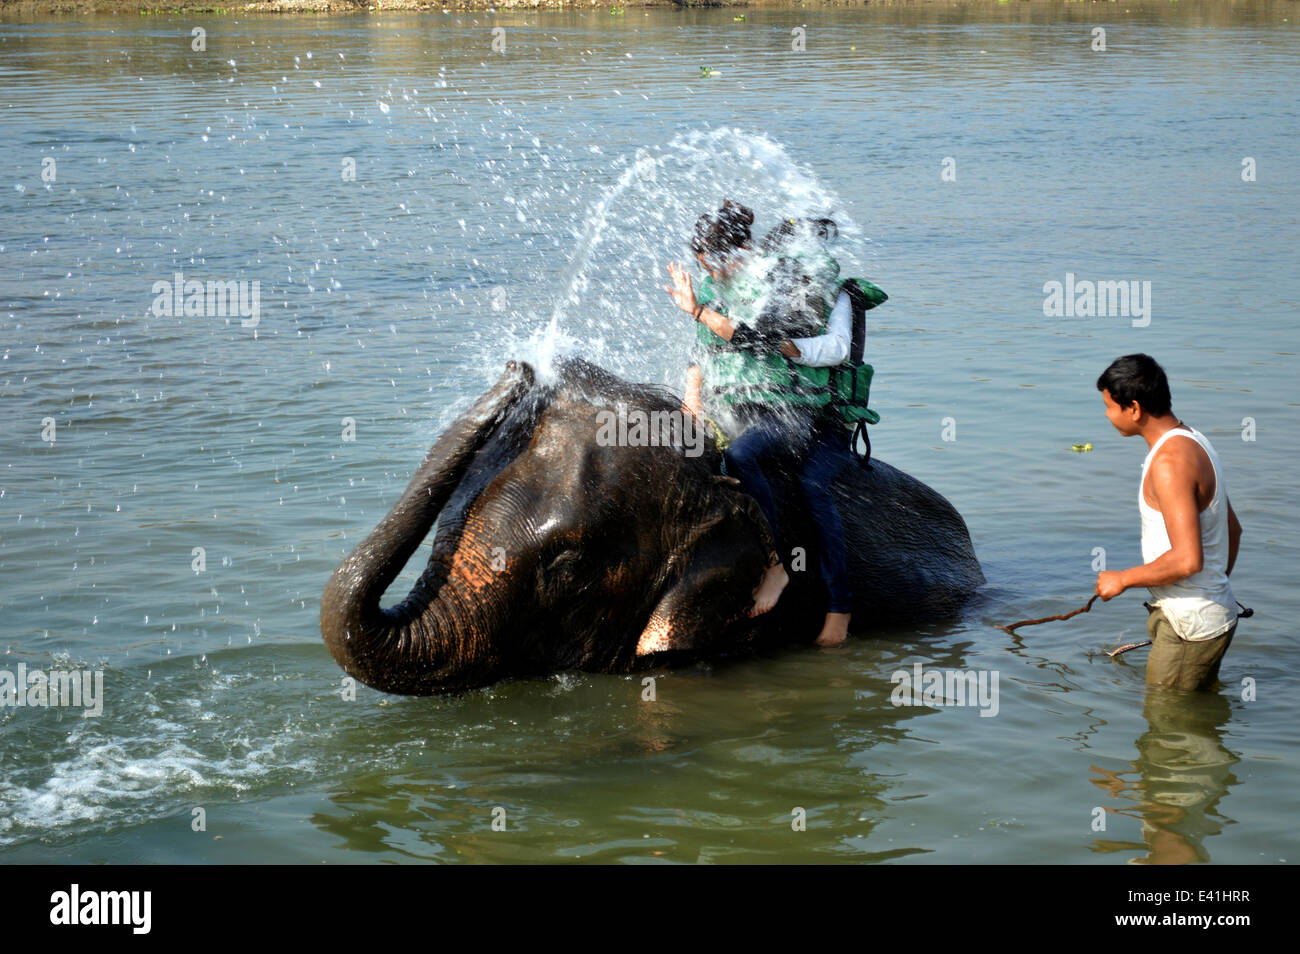 Elephant Shower That's a heffalump of a shower trunk! Two ladies enjoy the tusk of taking a pachyderm power shower Stock Photo